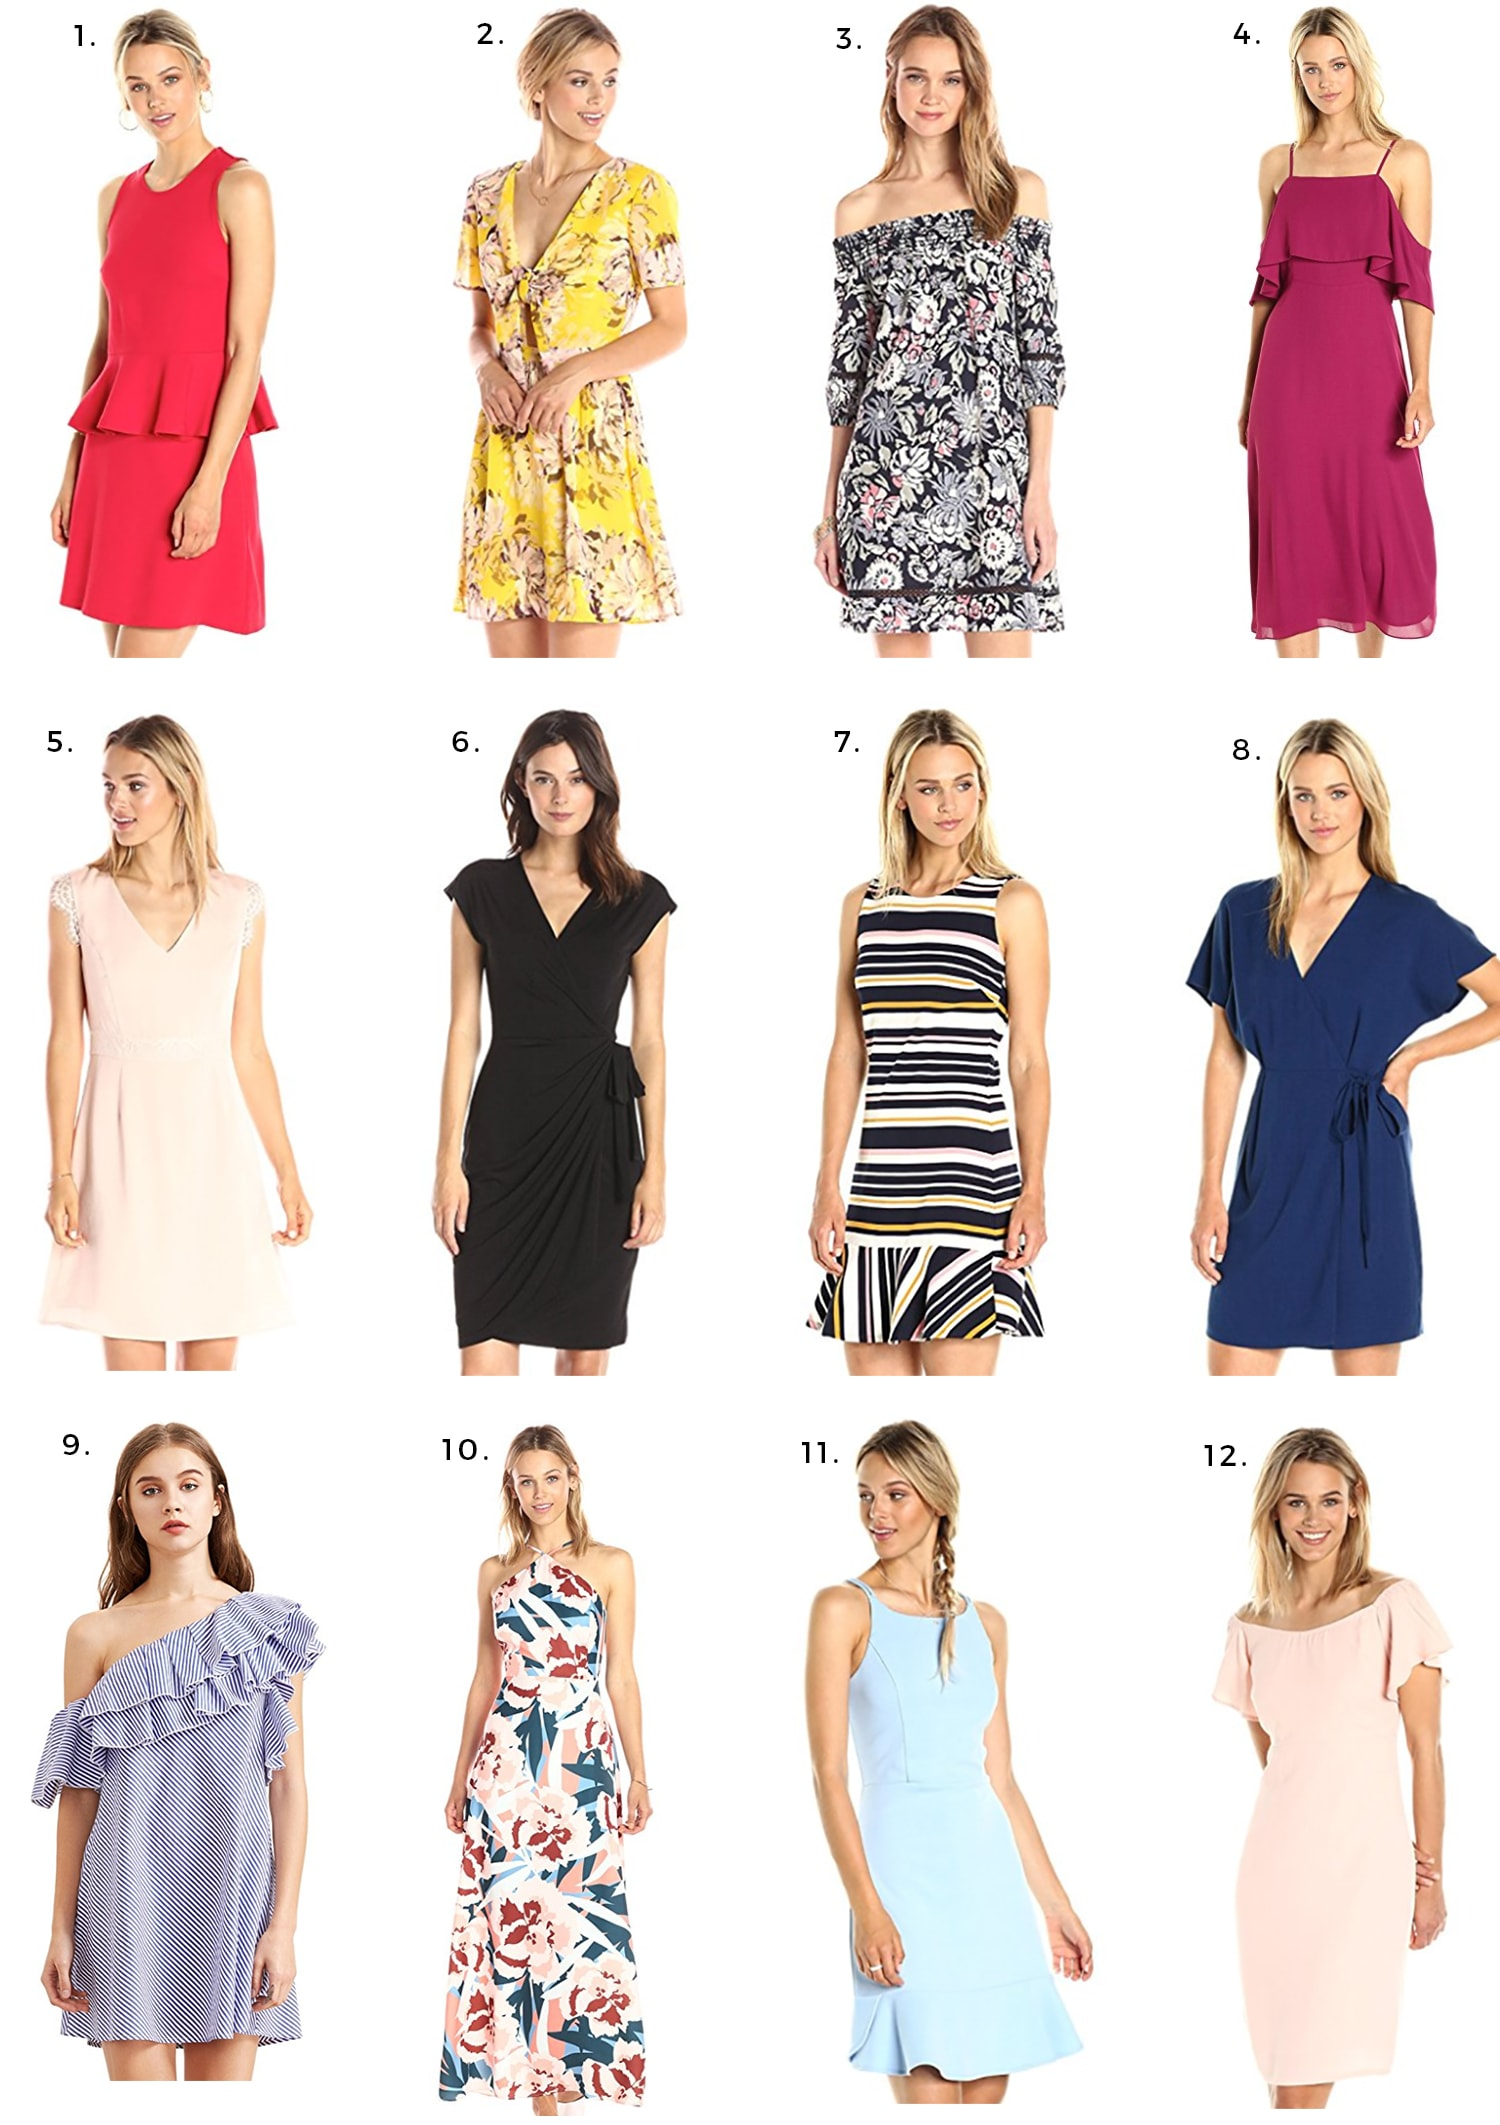 Cute dresses under $50 that ship free with Amazon Prime by Orlando fashion blogger Ashley Brooke Nicholas |  amazon fashion finds, affordable fashion